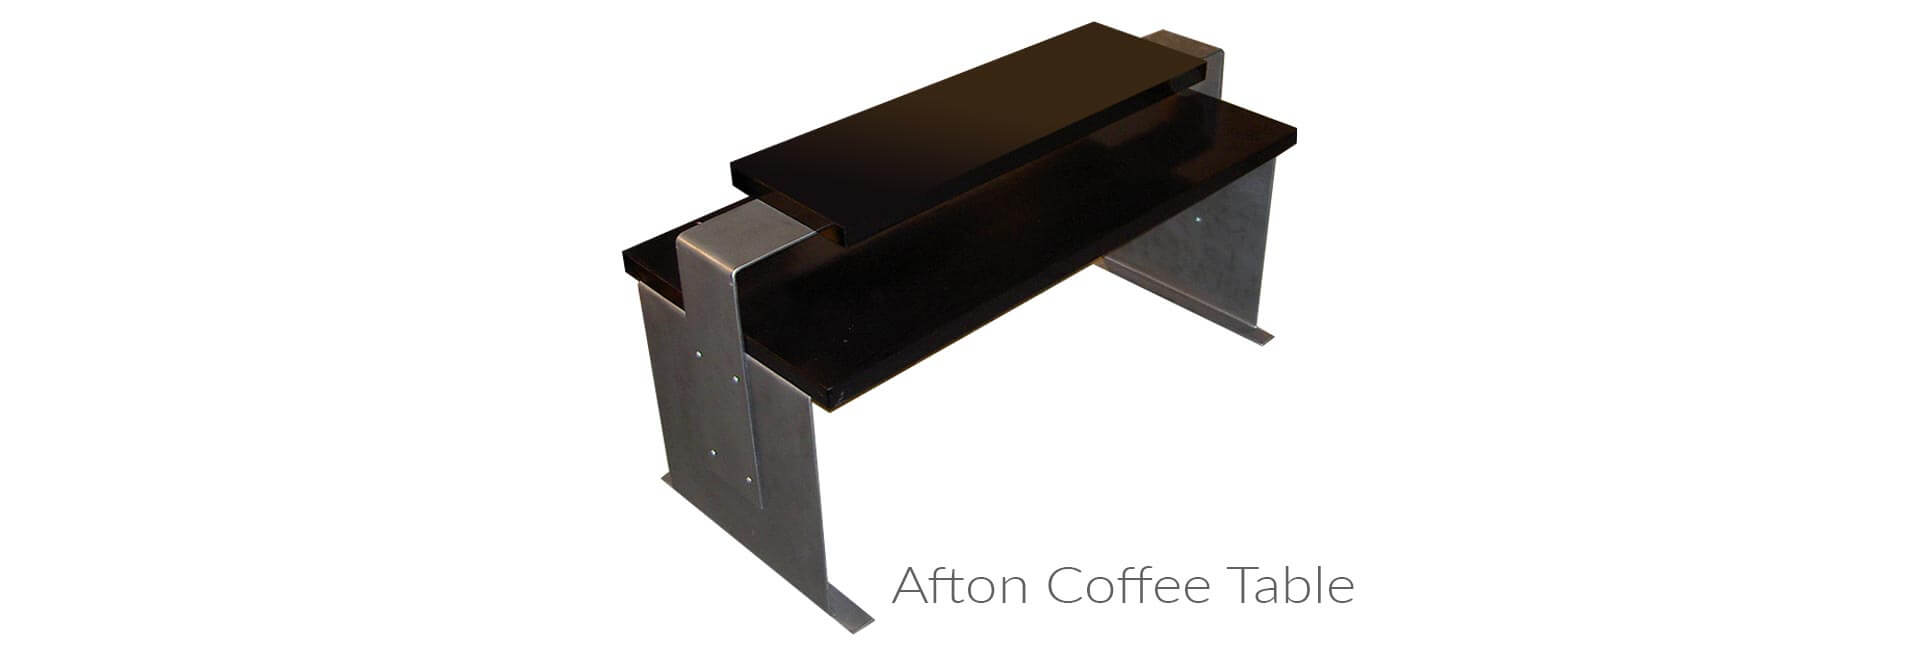 Afton-Coffee-Table